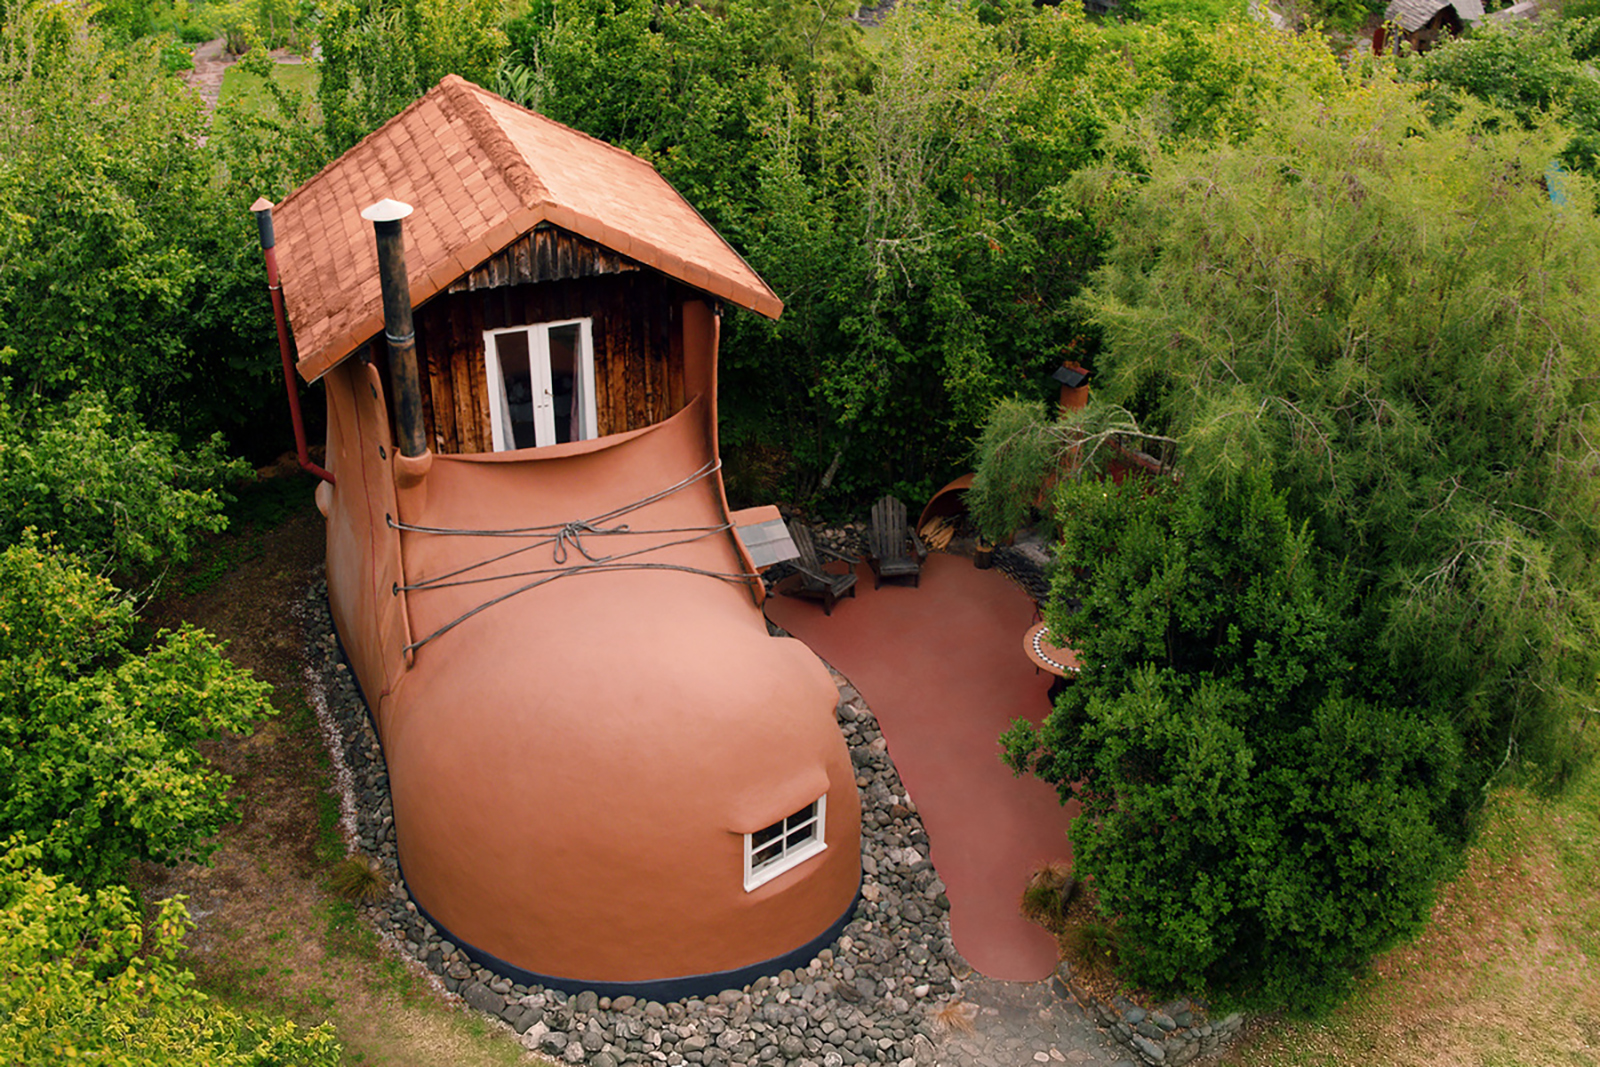 Airbnb launches $1 million fund to make the wackiest house designs ...